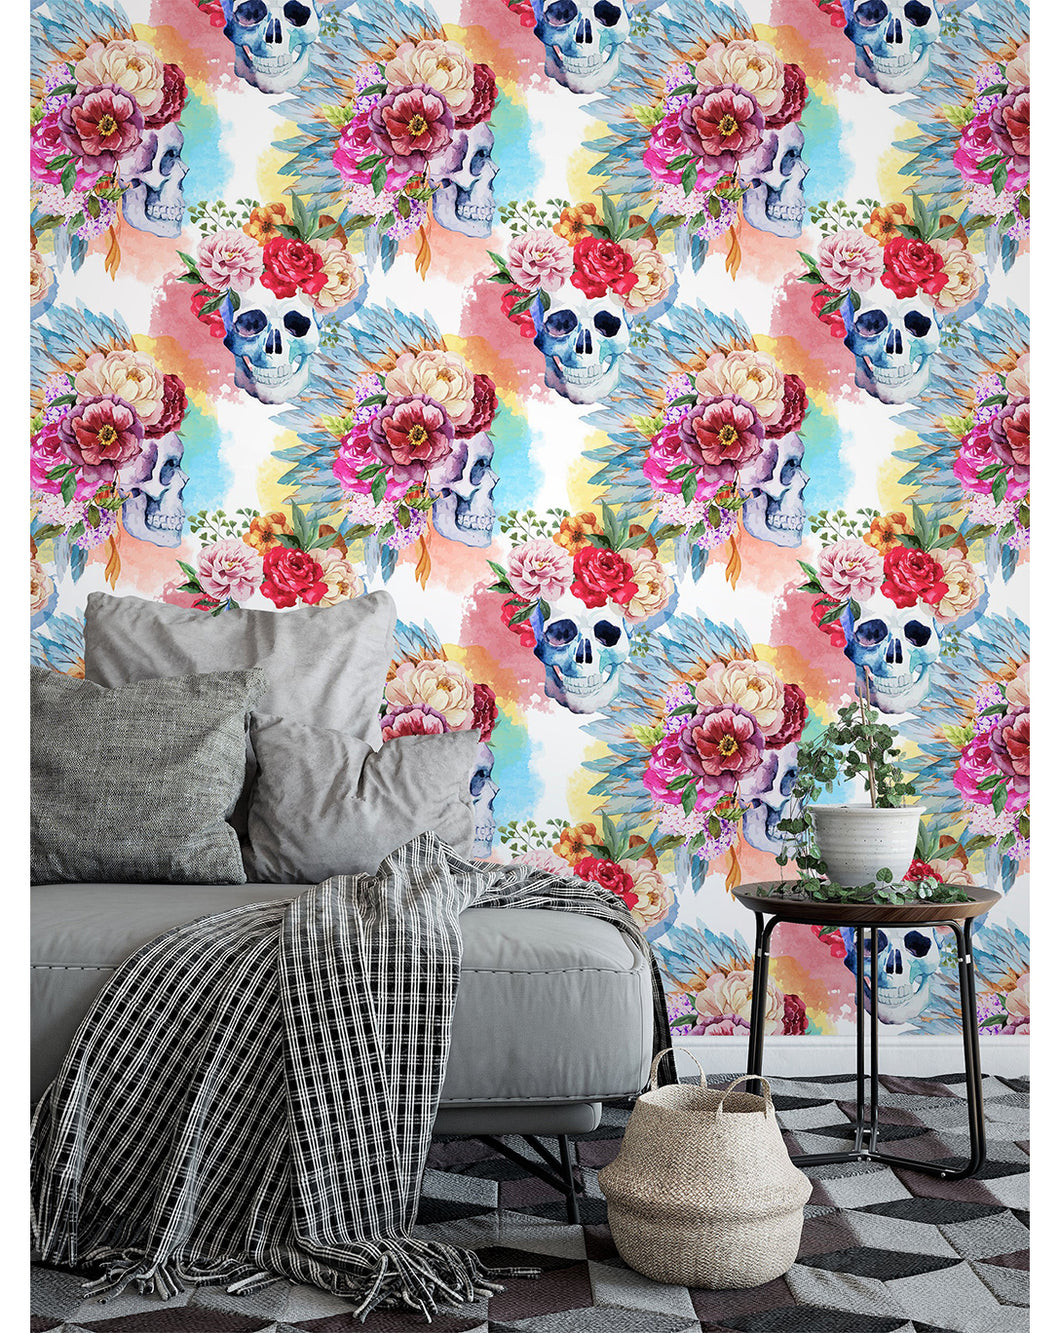 Costacover Removable Wallpaper Colorful Floral Watercolor Skulls